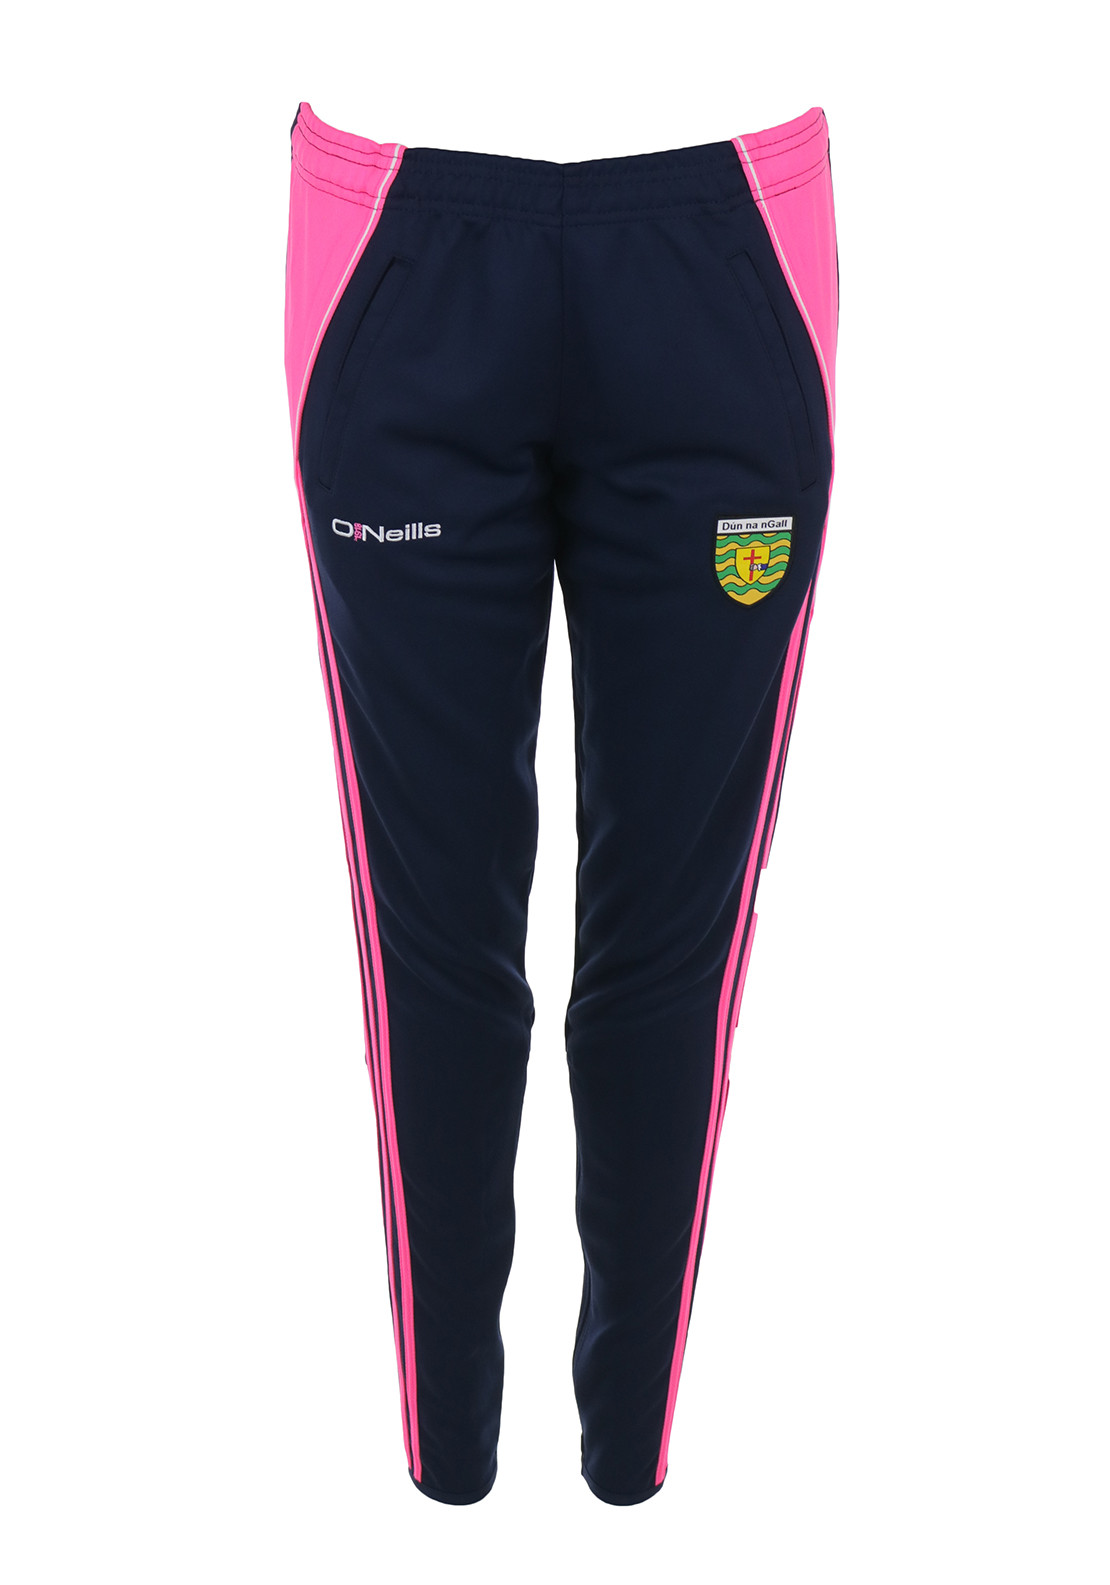 O'Neill's Donegal GAA Conall Striped Skinny Pants, Navy